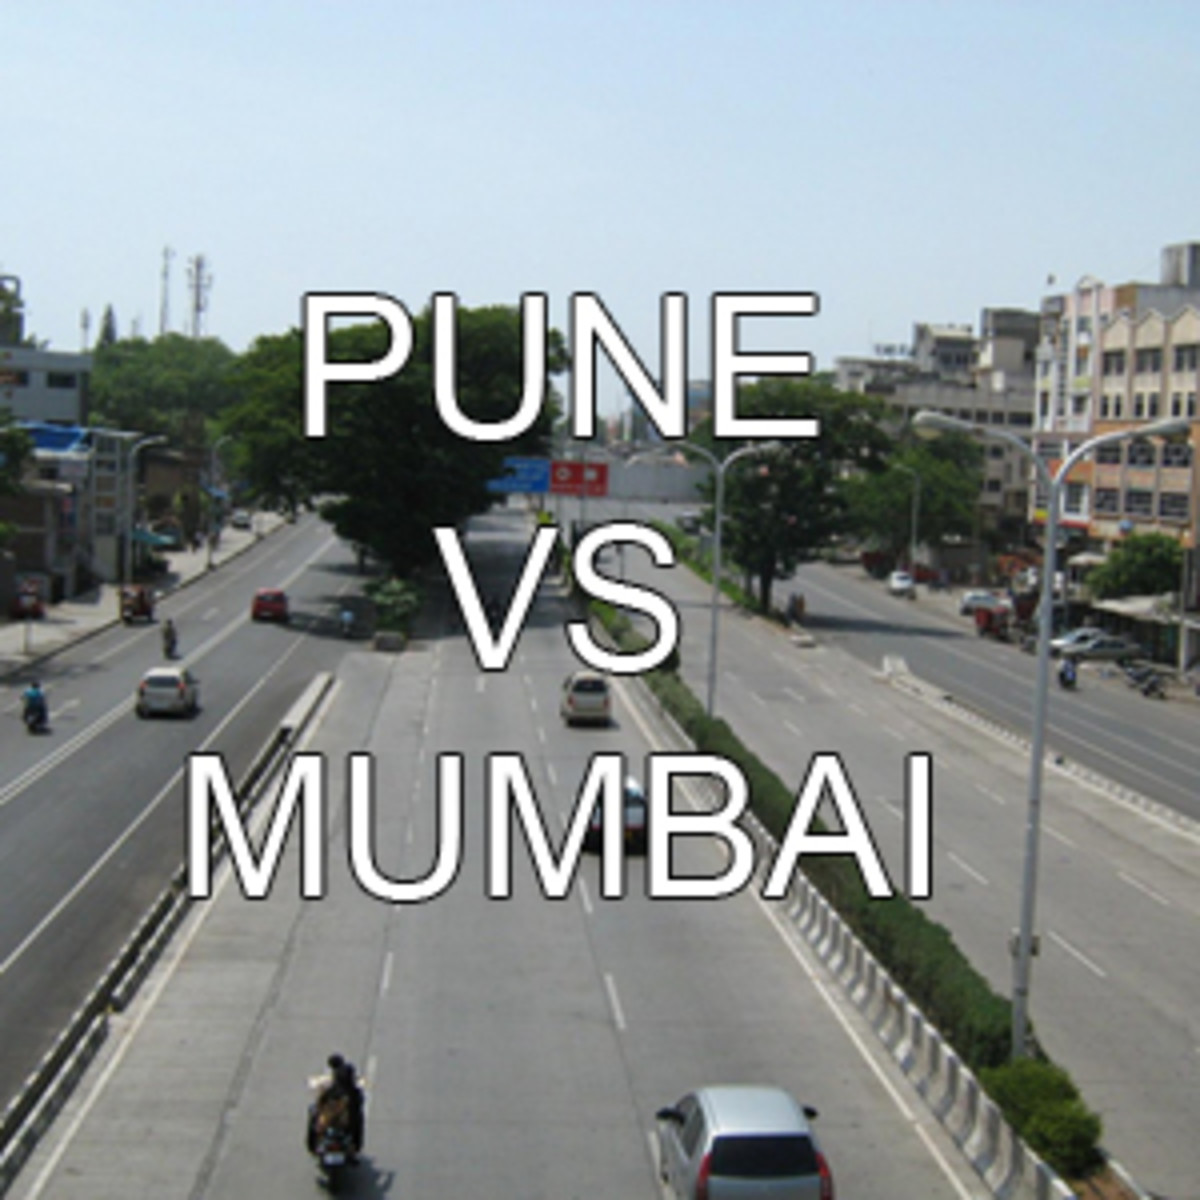 Pune Vs Mumbai - Which Is the Better City to Live in